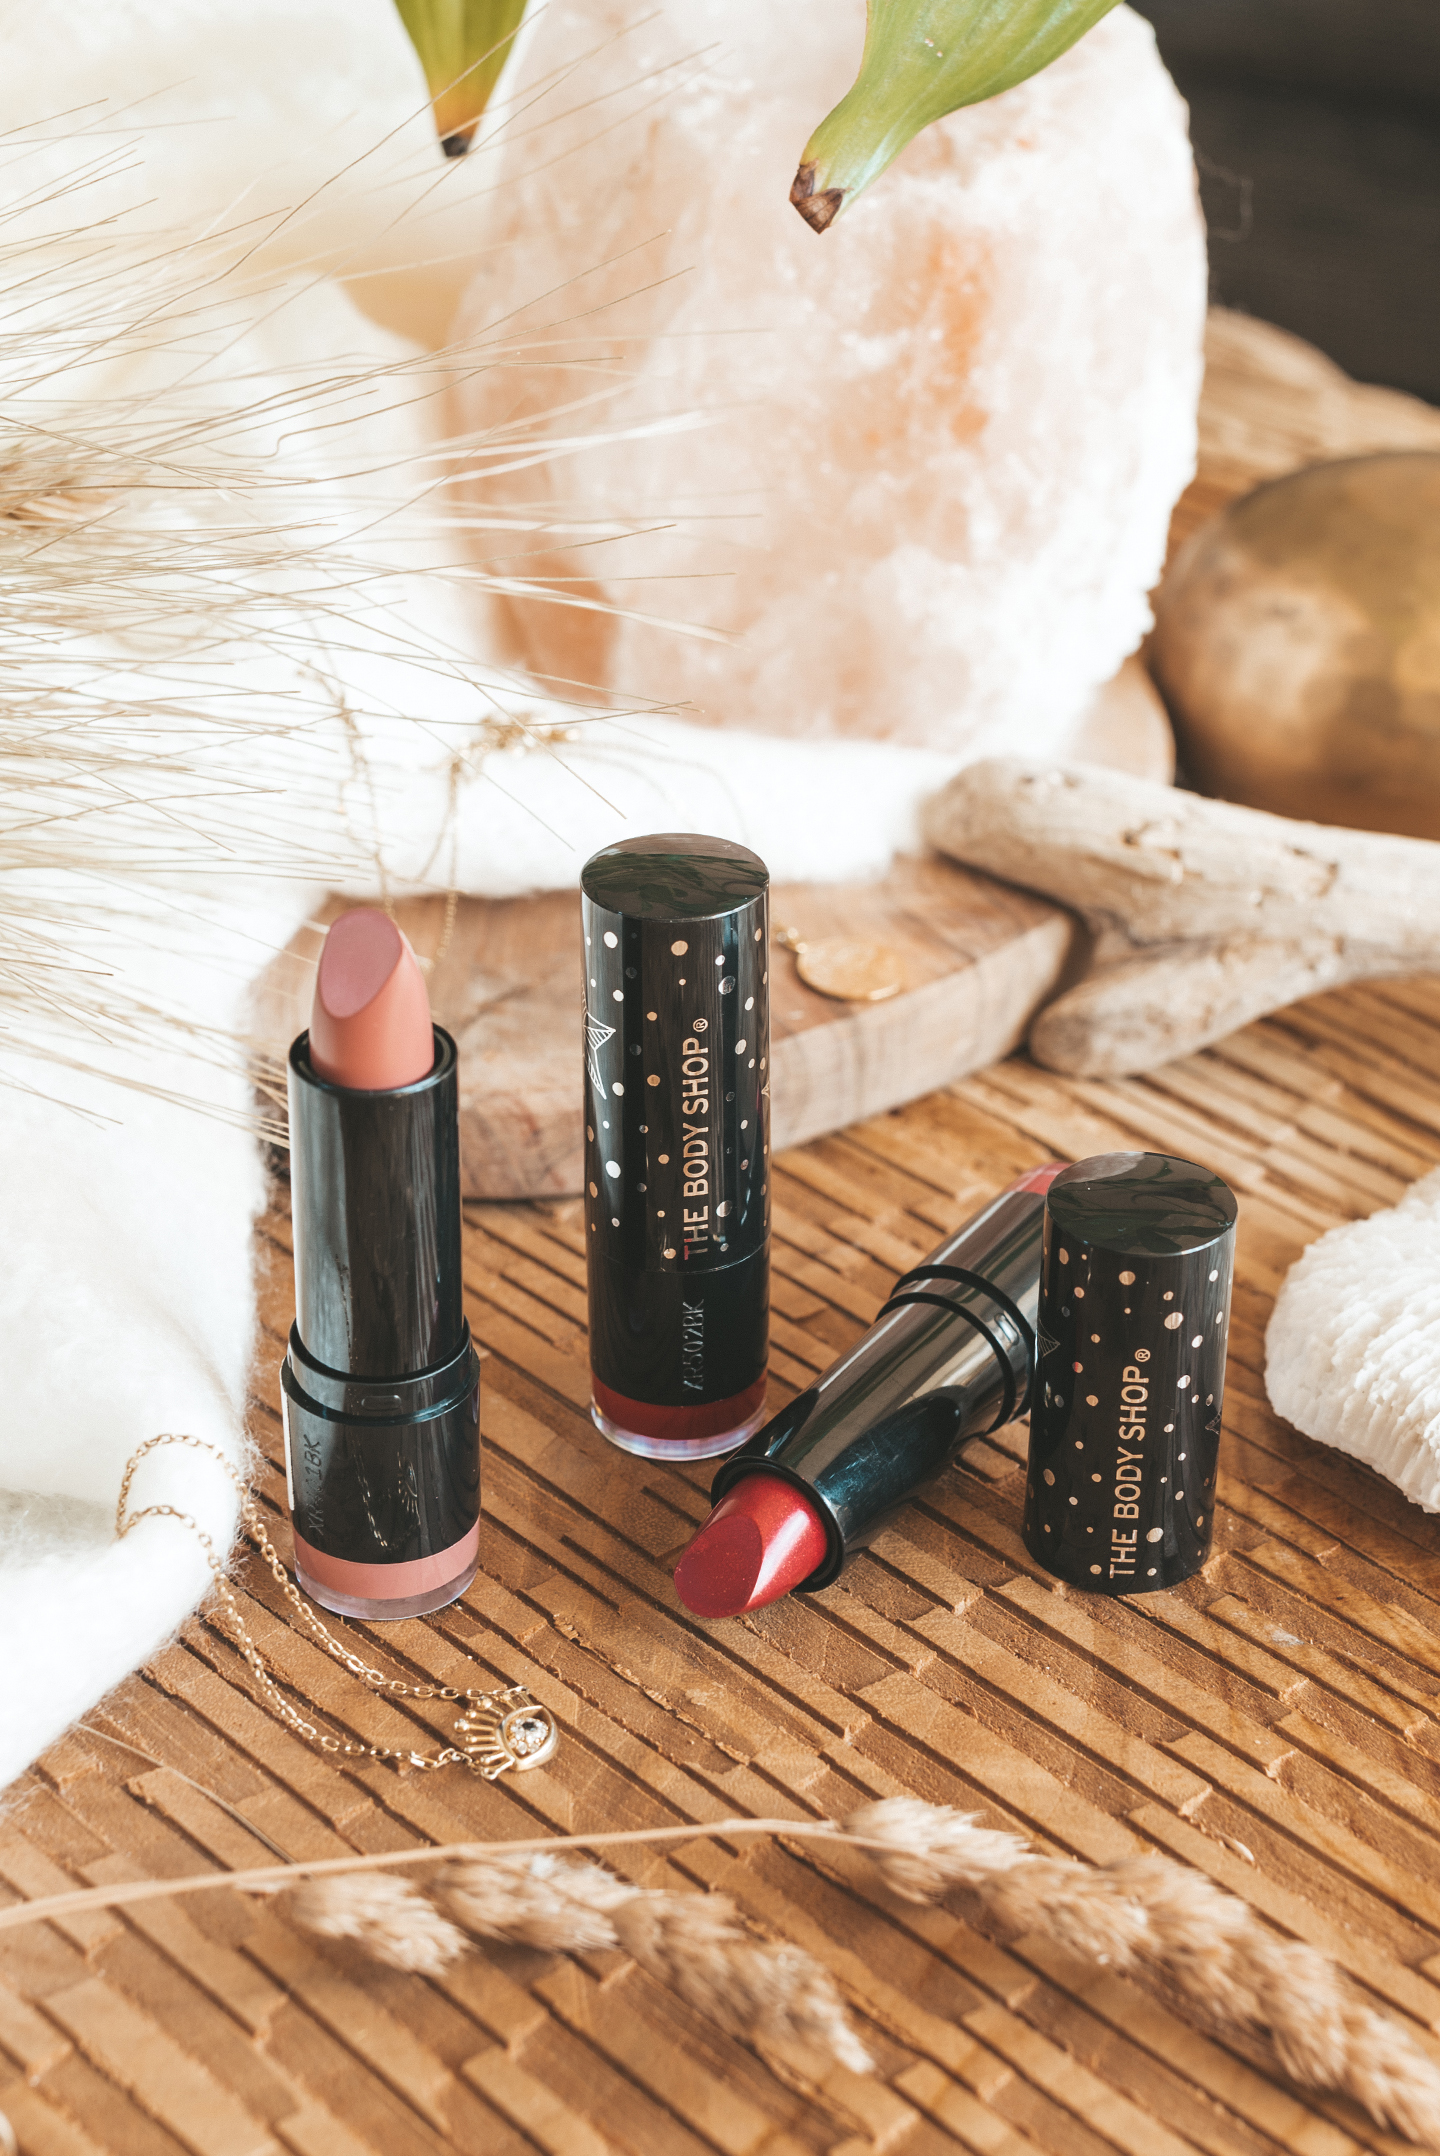 Colour Crush Lipsticks The Body Shop